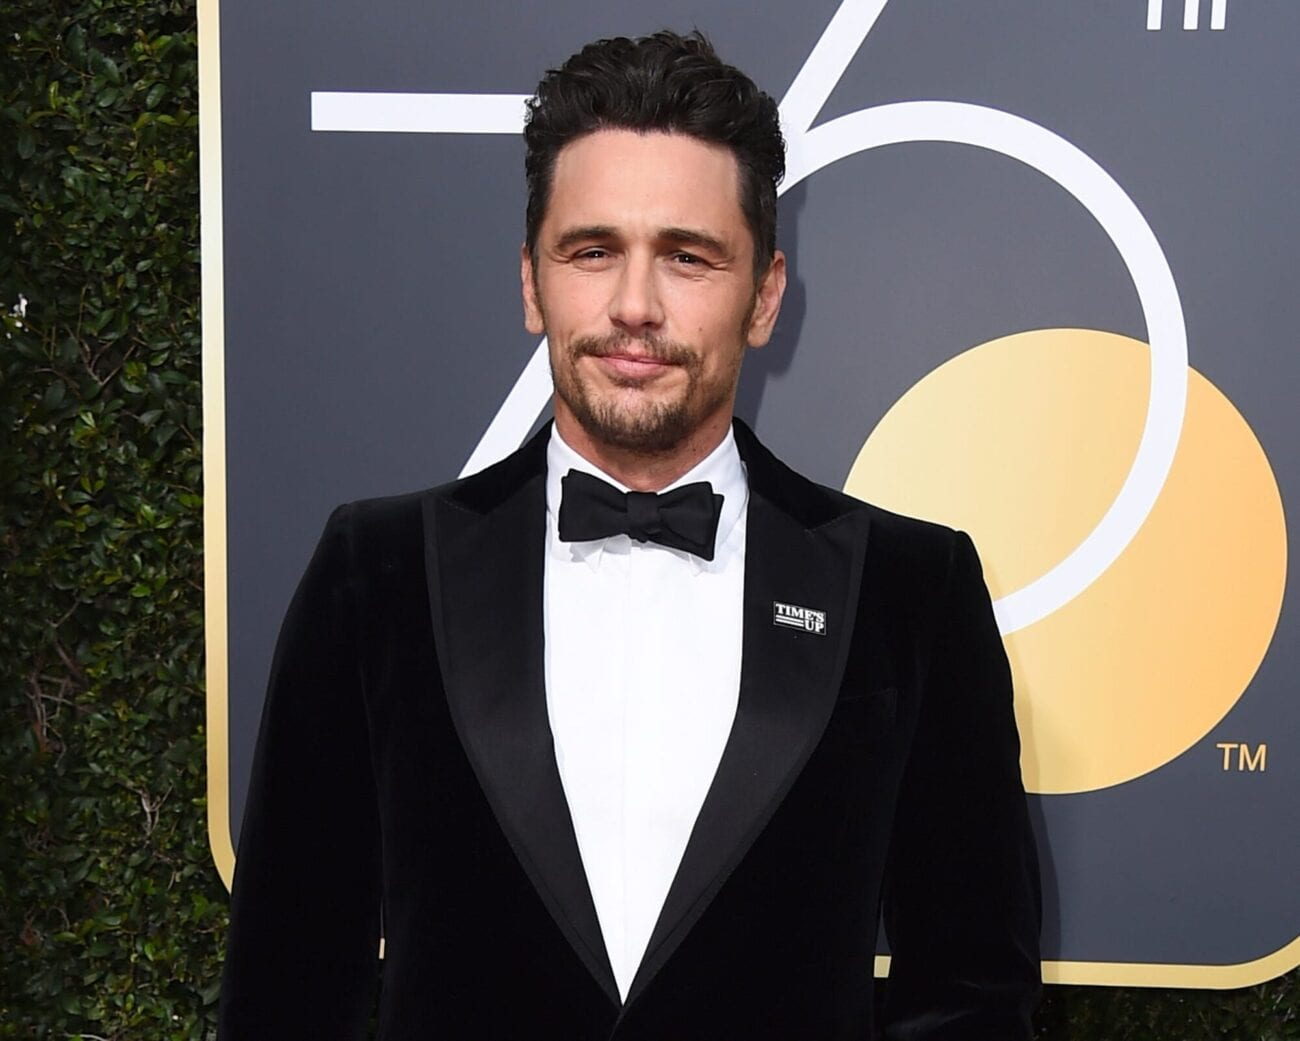 Will James Franco ever be able to star in movies again? Let's take a look at all of the disturbing case details following his recent lawsuit.